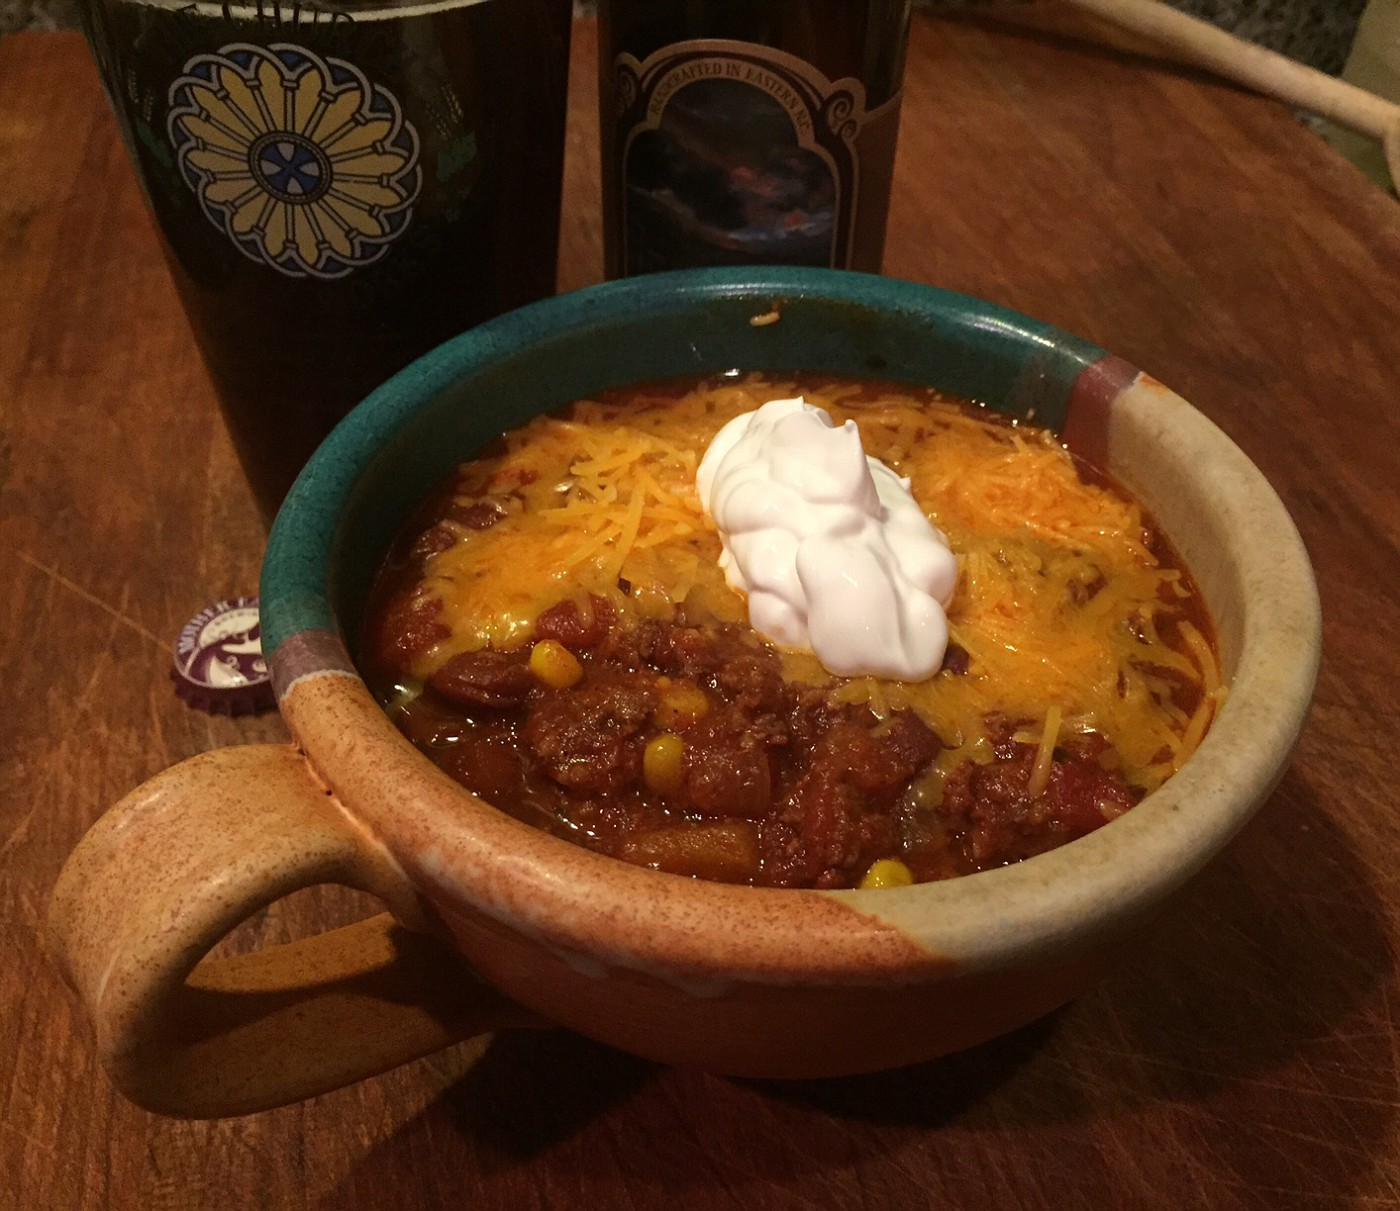 Smoked Chili Finally A Technique That Yields Bge Flavors In My Bowl Big Green Egg Egghead Forum The Ultimate Cooking Experience